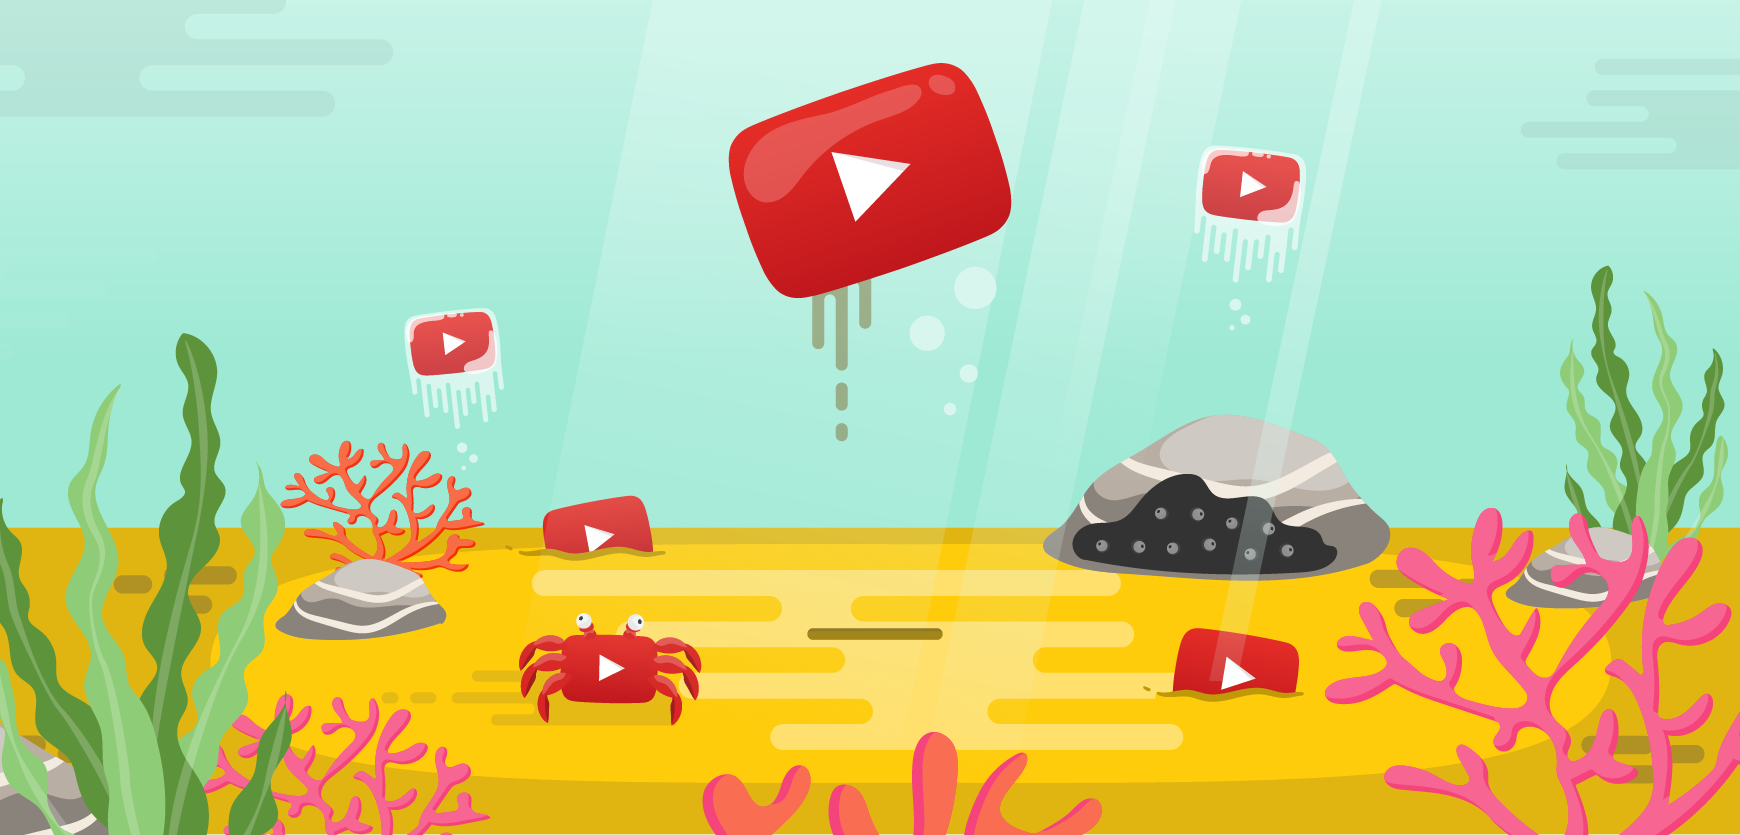 YouTube SEO deep dive: How to rank your videos to the surface